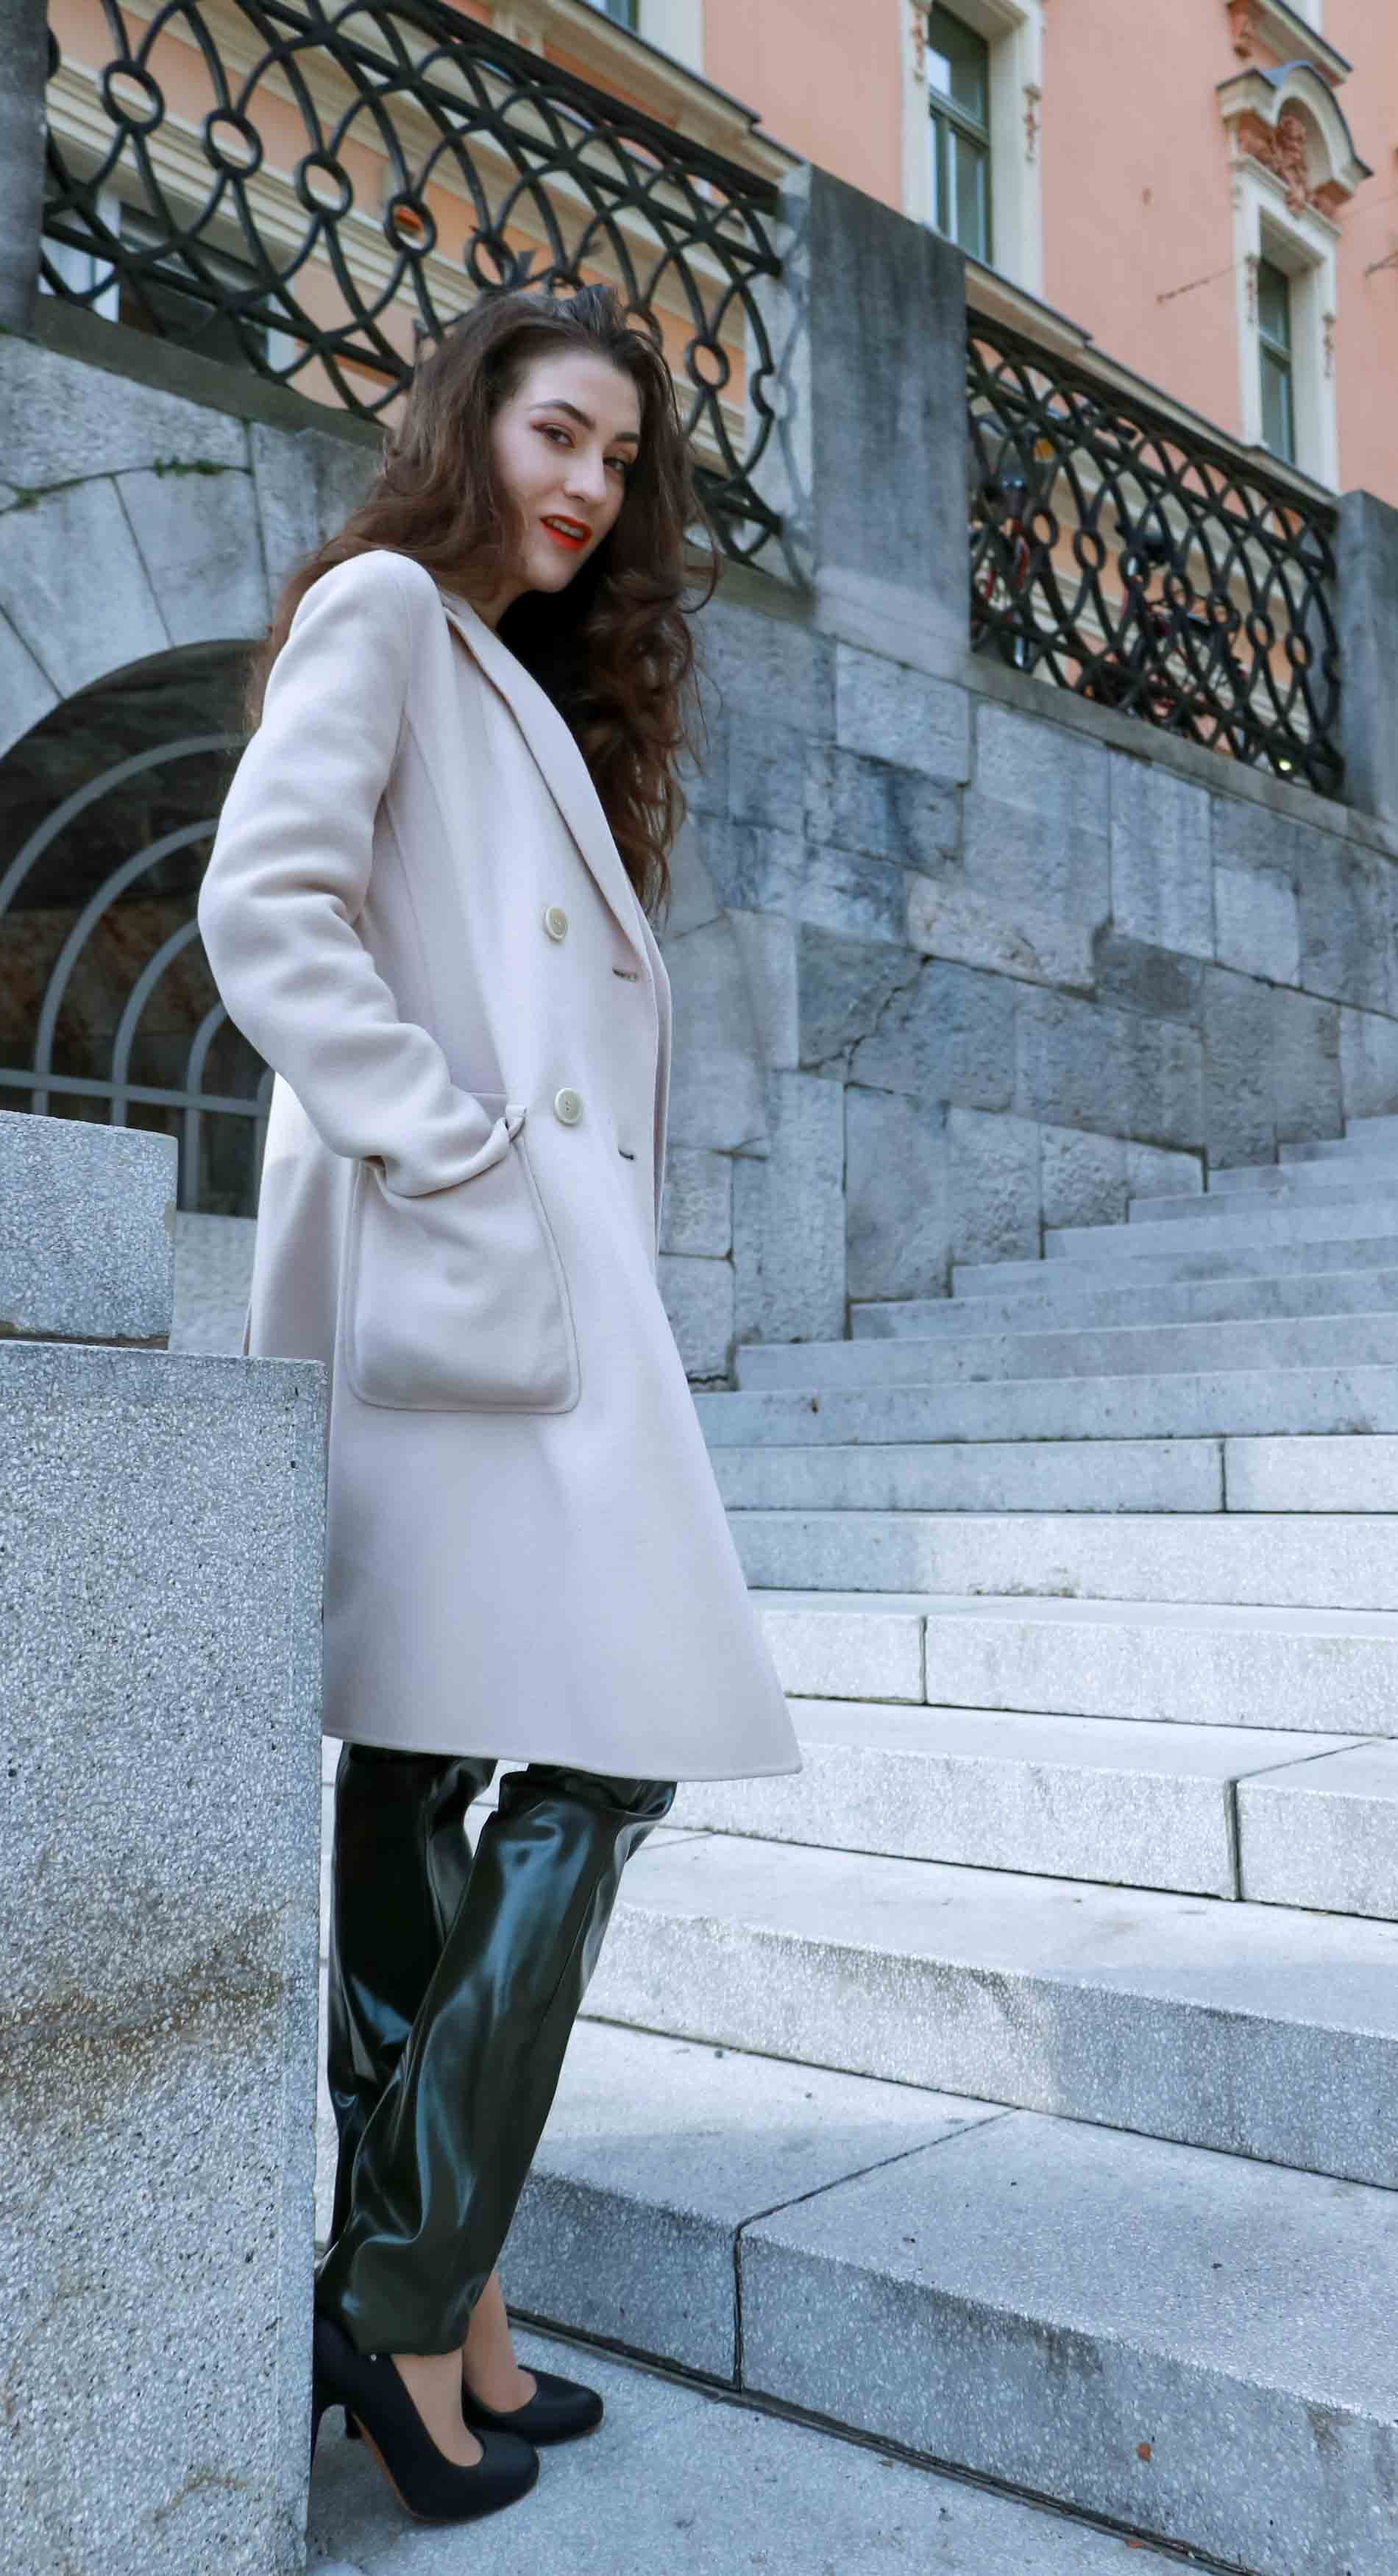 Fashion Blogger Veronika Lipar of Brunette from Wall Street wearing Acne Studios vinyl pants, Weekened Maxmara double breasted pastel coat, Max Mara camel cable knit sweater and black Aquazzura pumps as chic business outfit